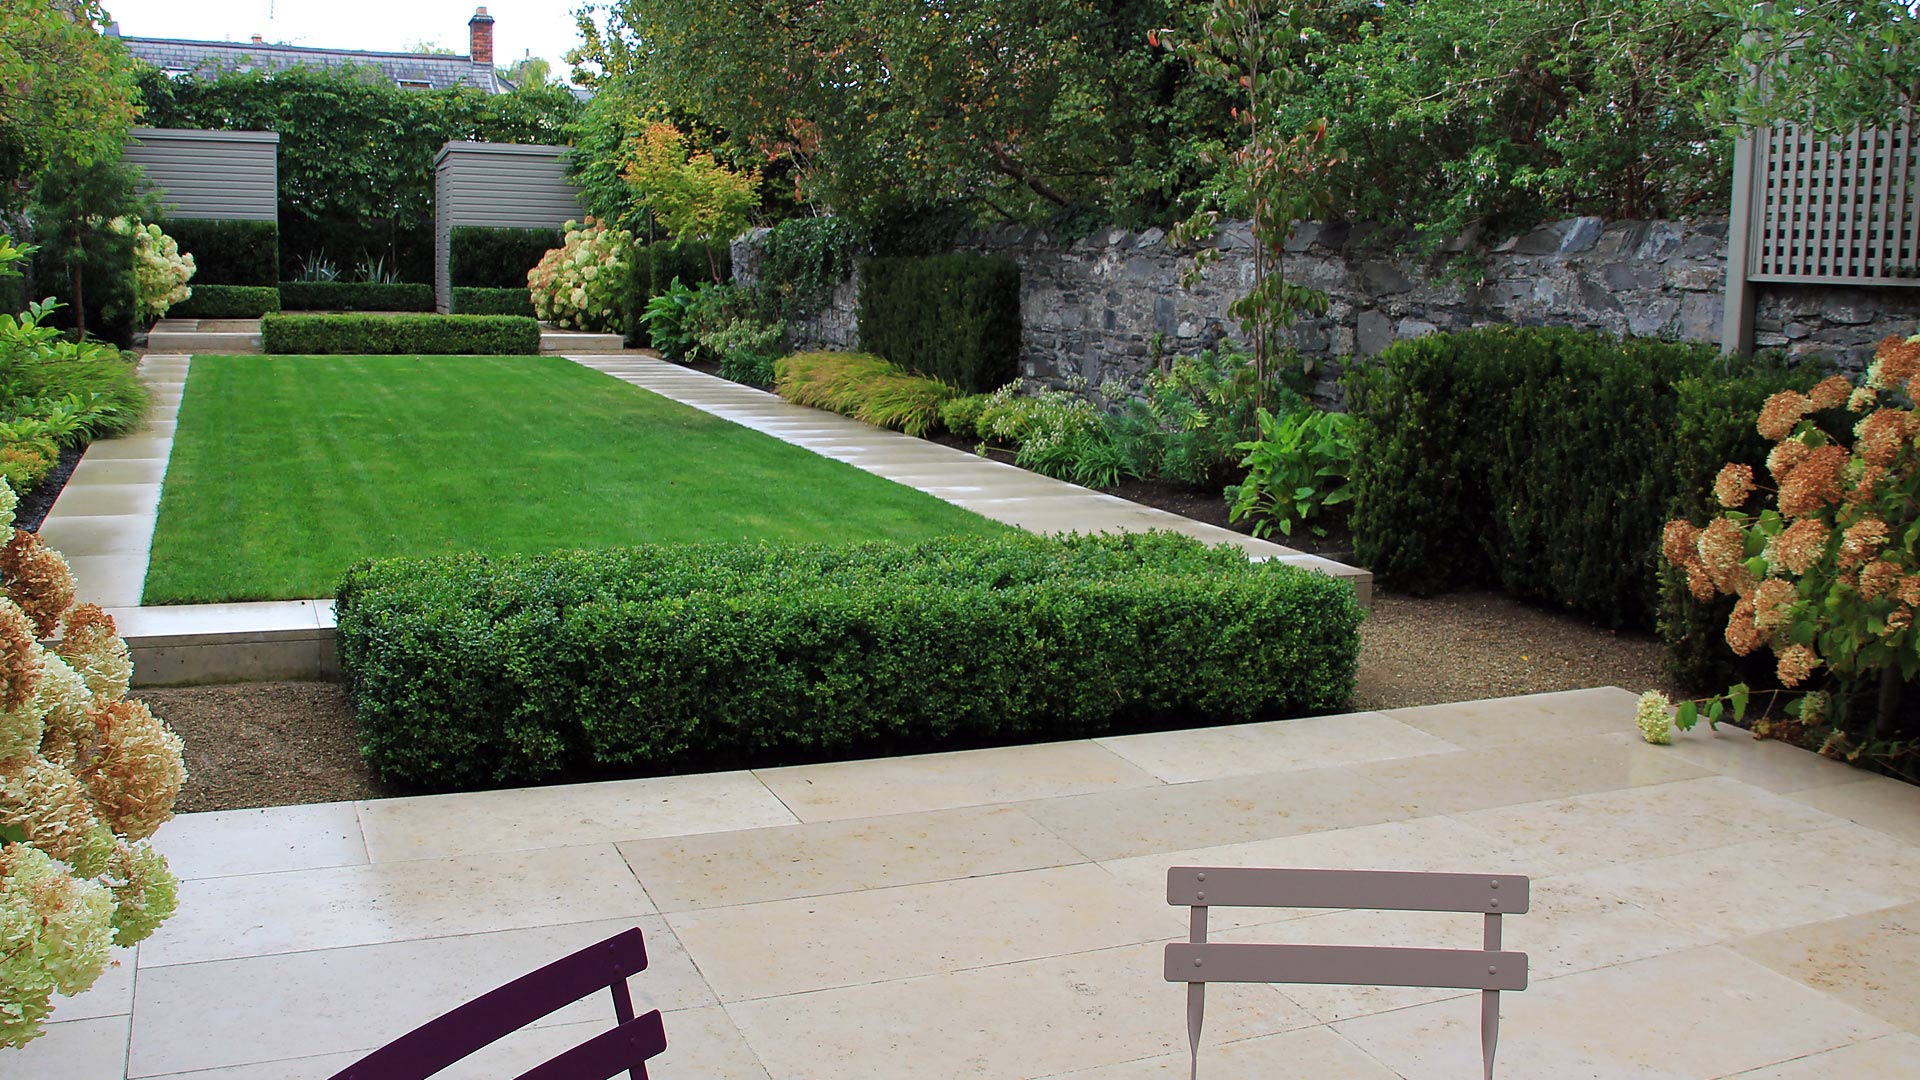 1000 images about trethewey contemporary lawn on for Design my garden ideas